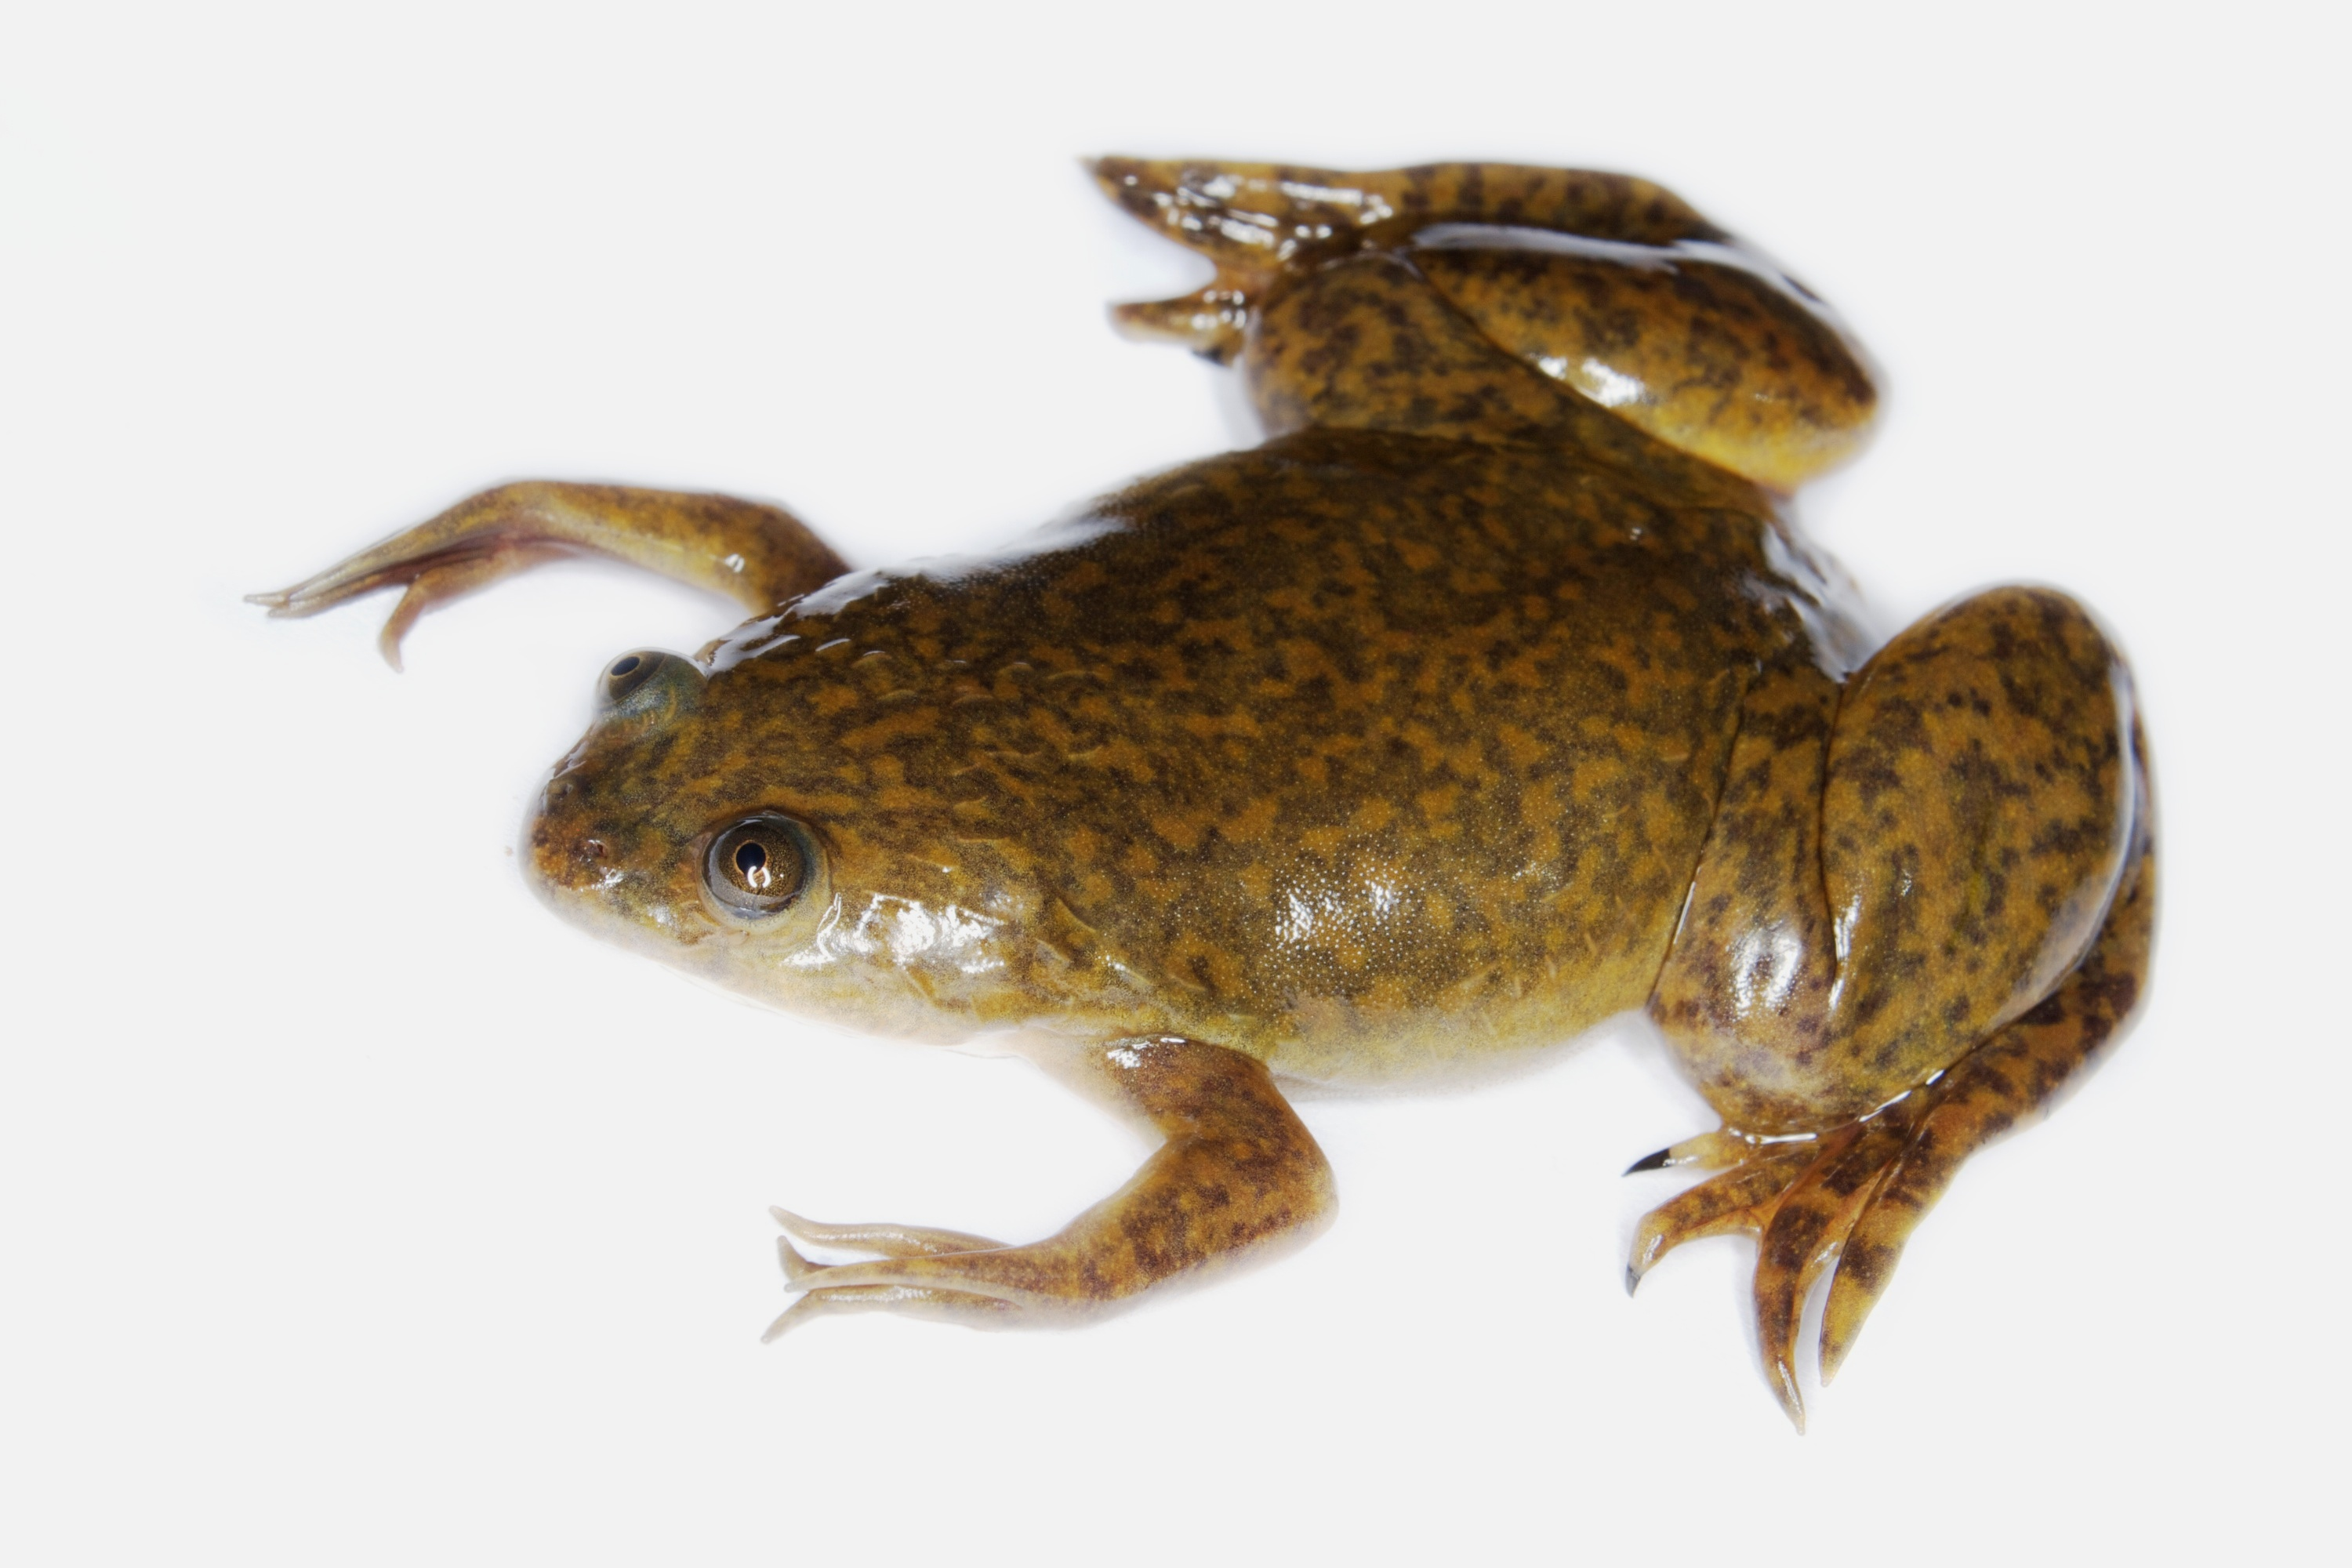 Frogs Were Used For Pregnancy Tests